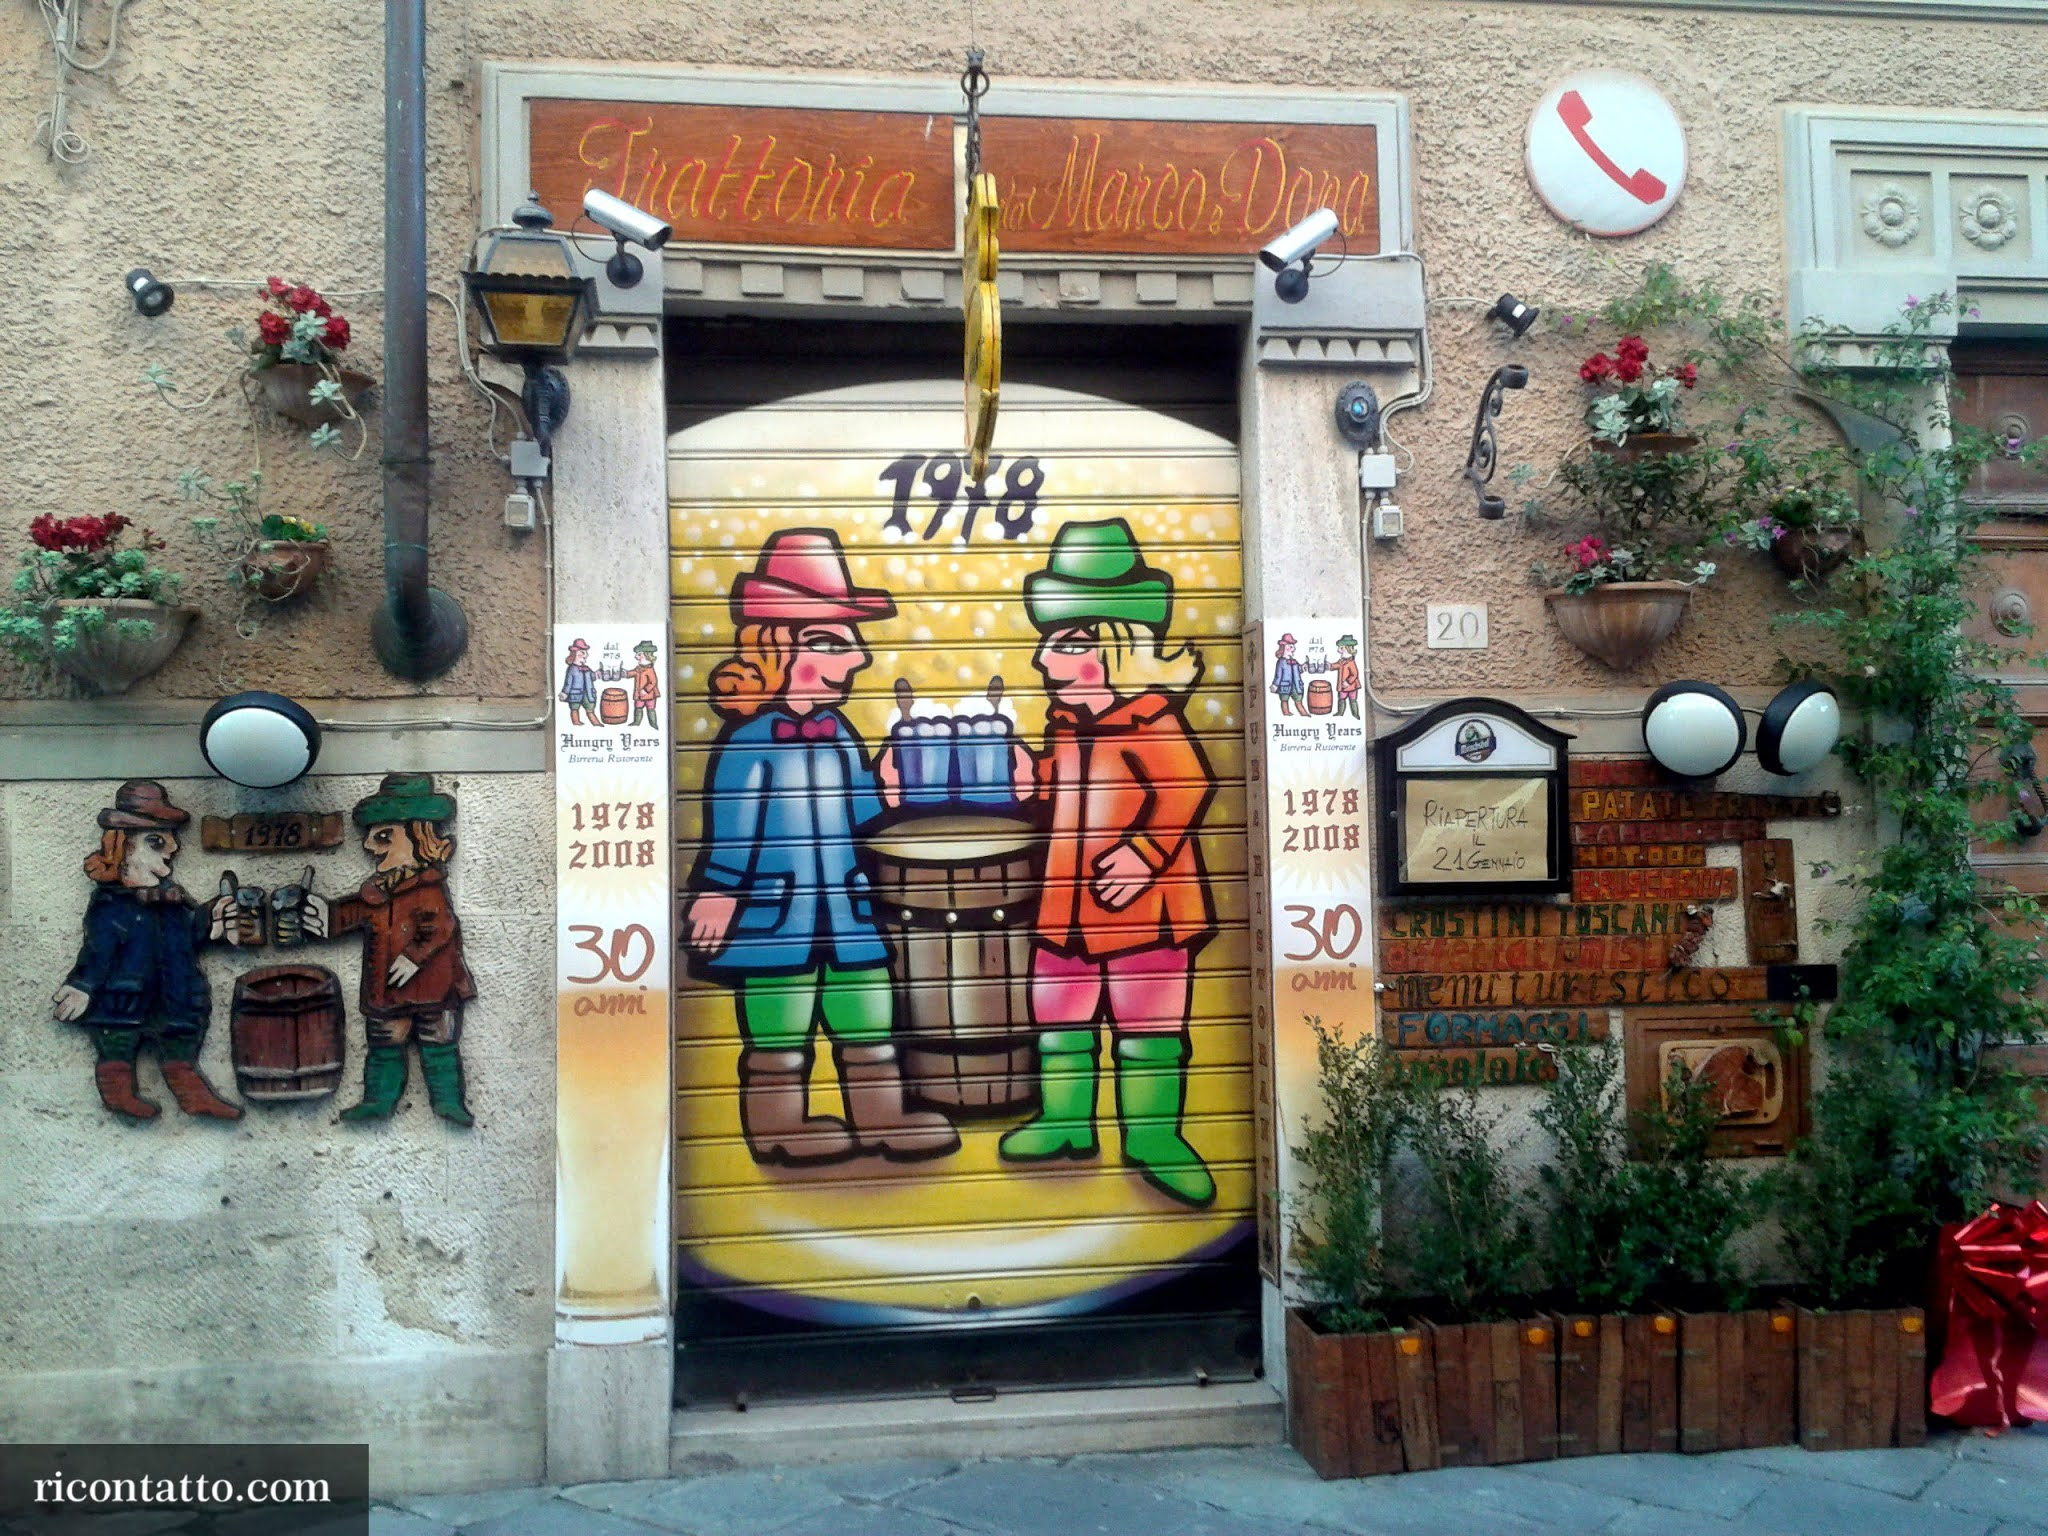 Grosseto, Toscana, Italy - Photo #04 by Ricontatto.com